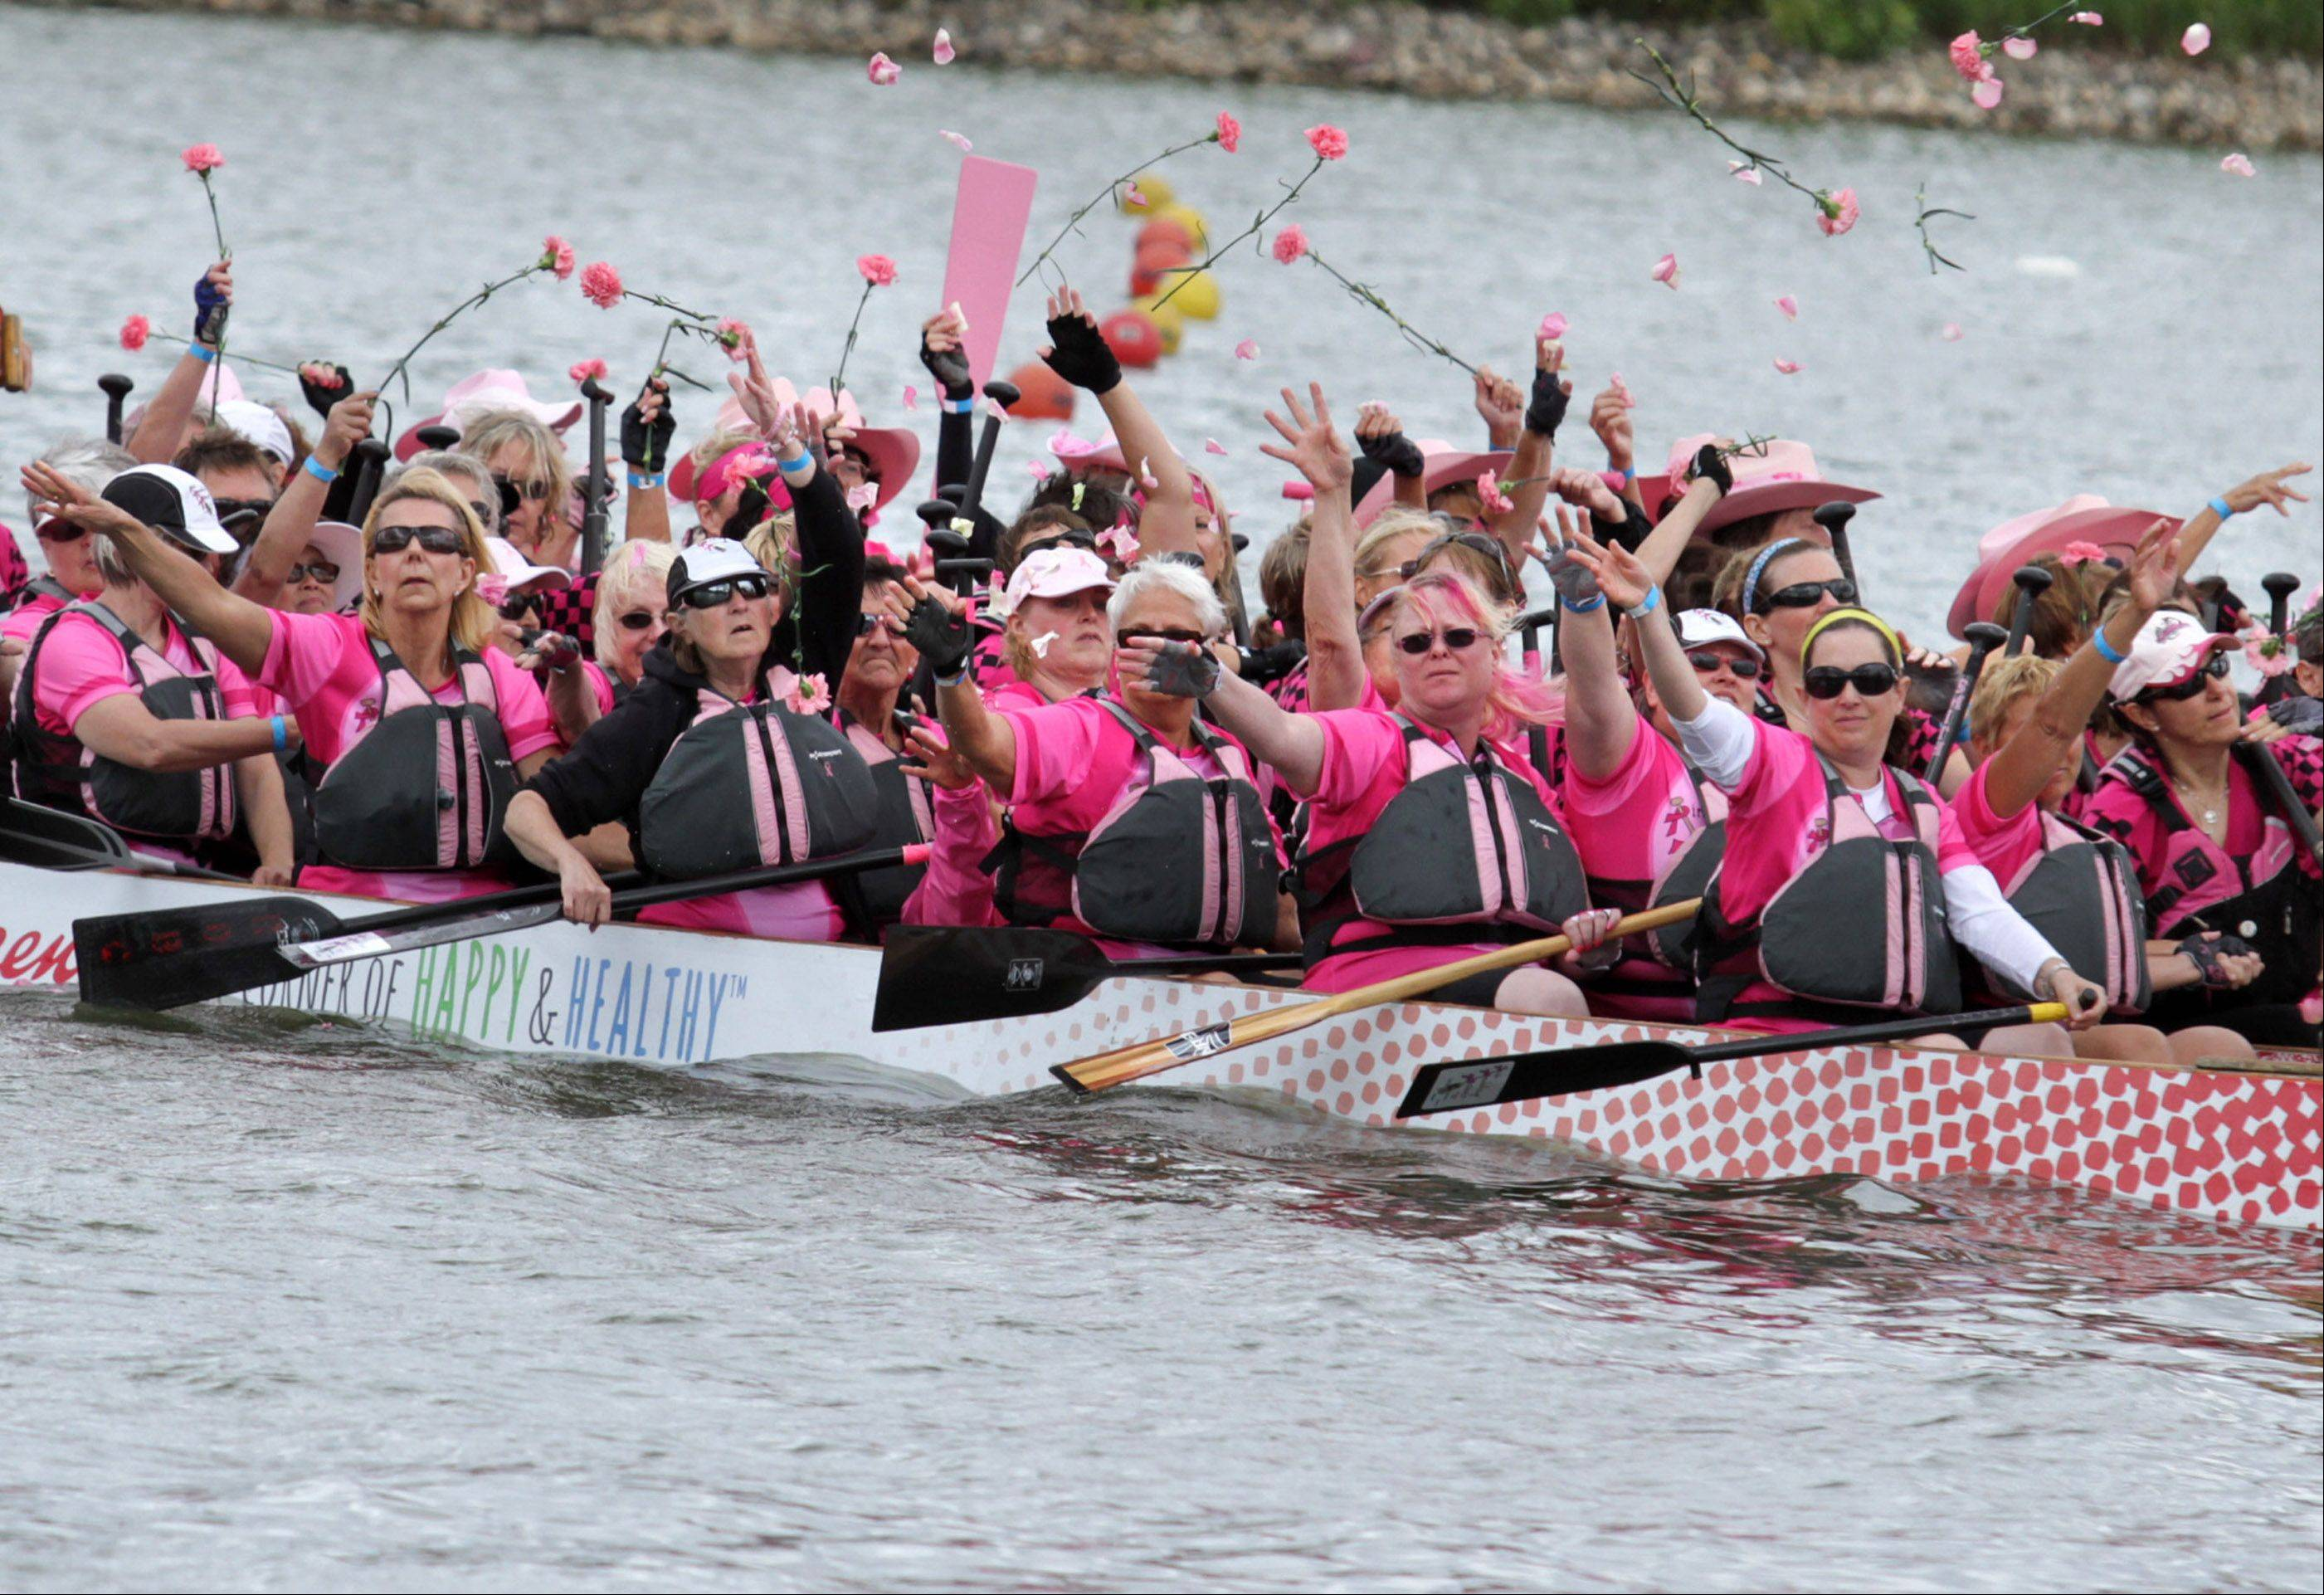 Cancer survivor teams wore pink and held a ceremony throwing roses into Lake Arlington during Walgreens Chicago International Dragon Boat Festival in Arlington Heights on Saturday.